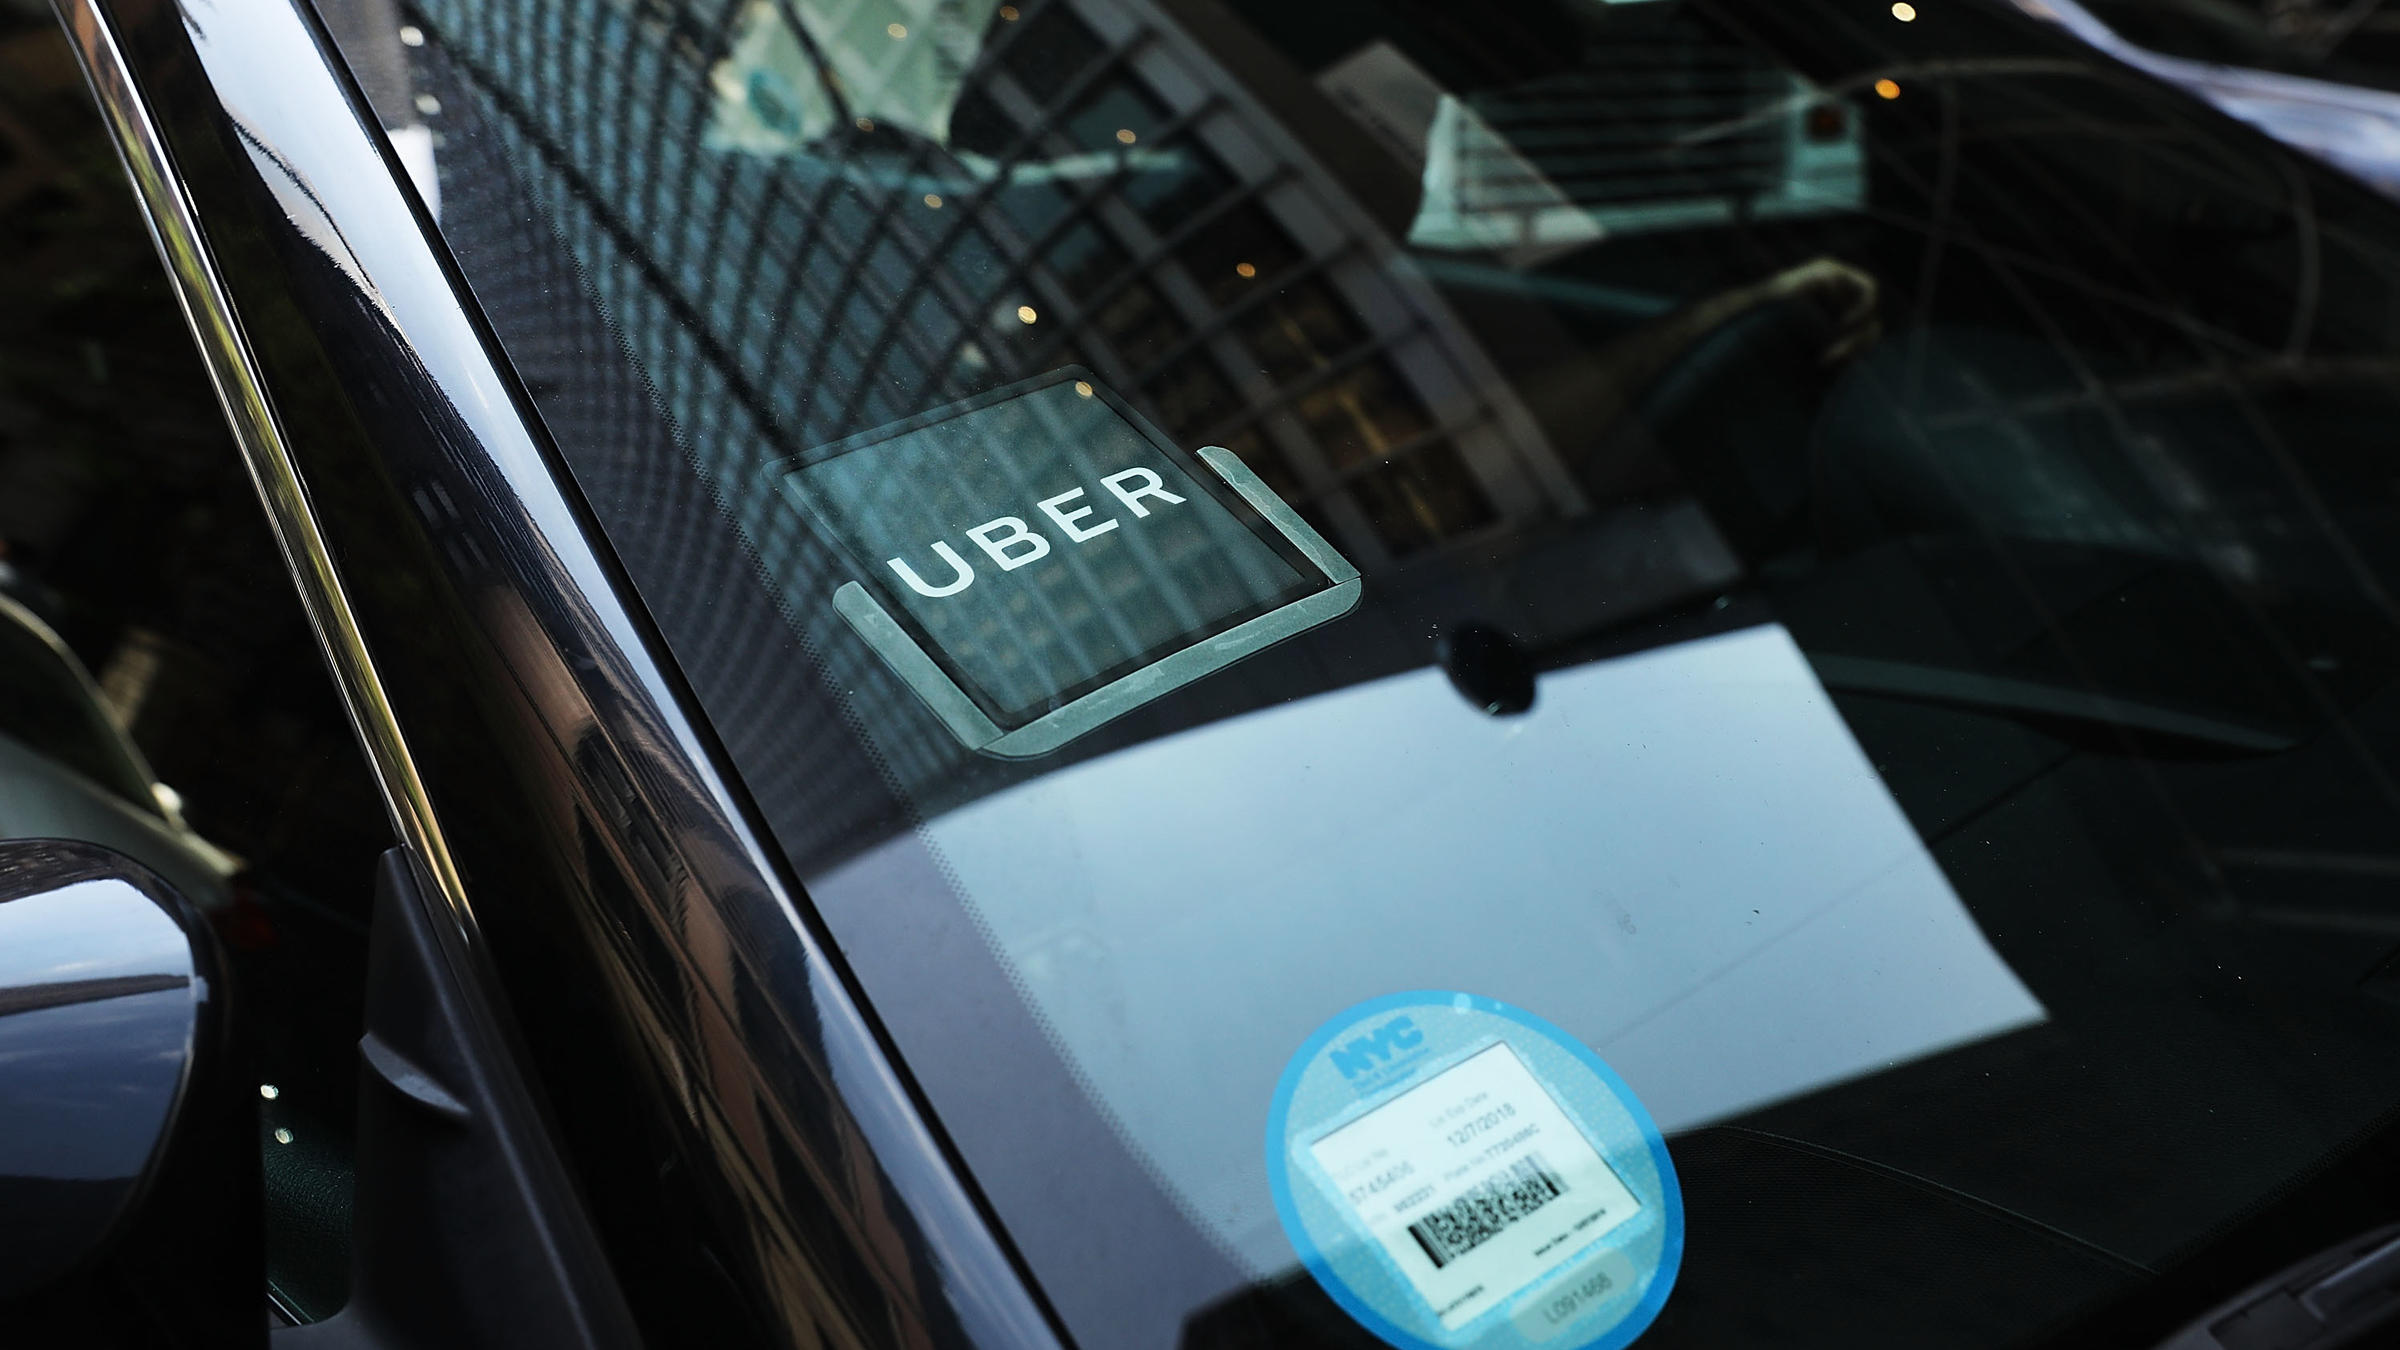 Uber/Lyft drivers earn median $3.37/hour after expenses